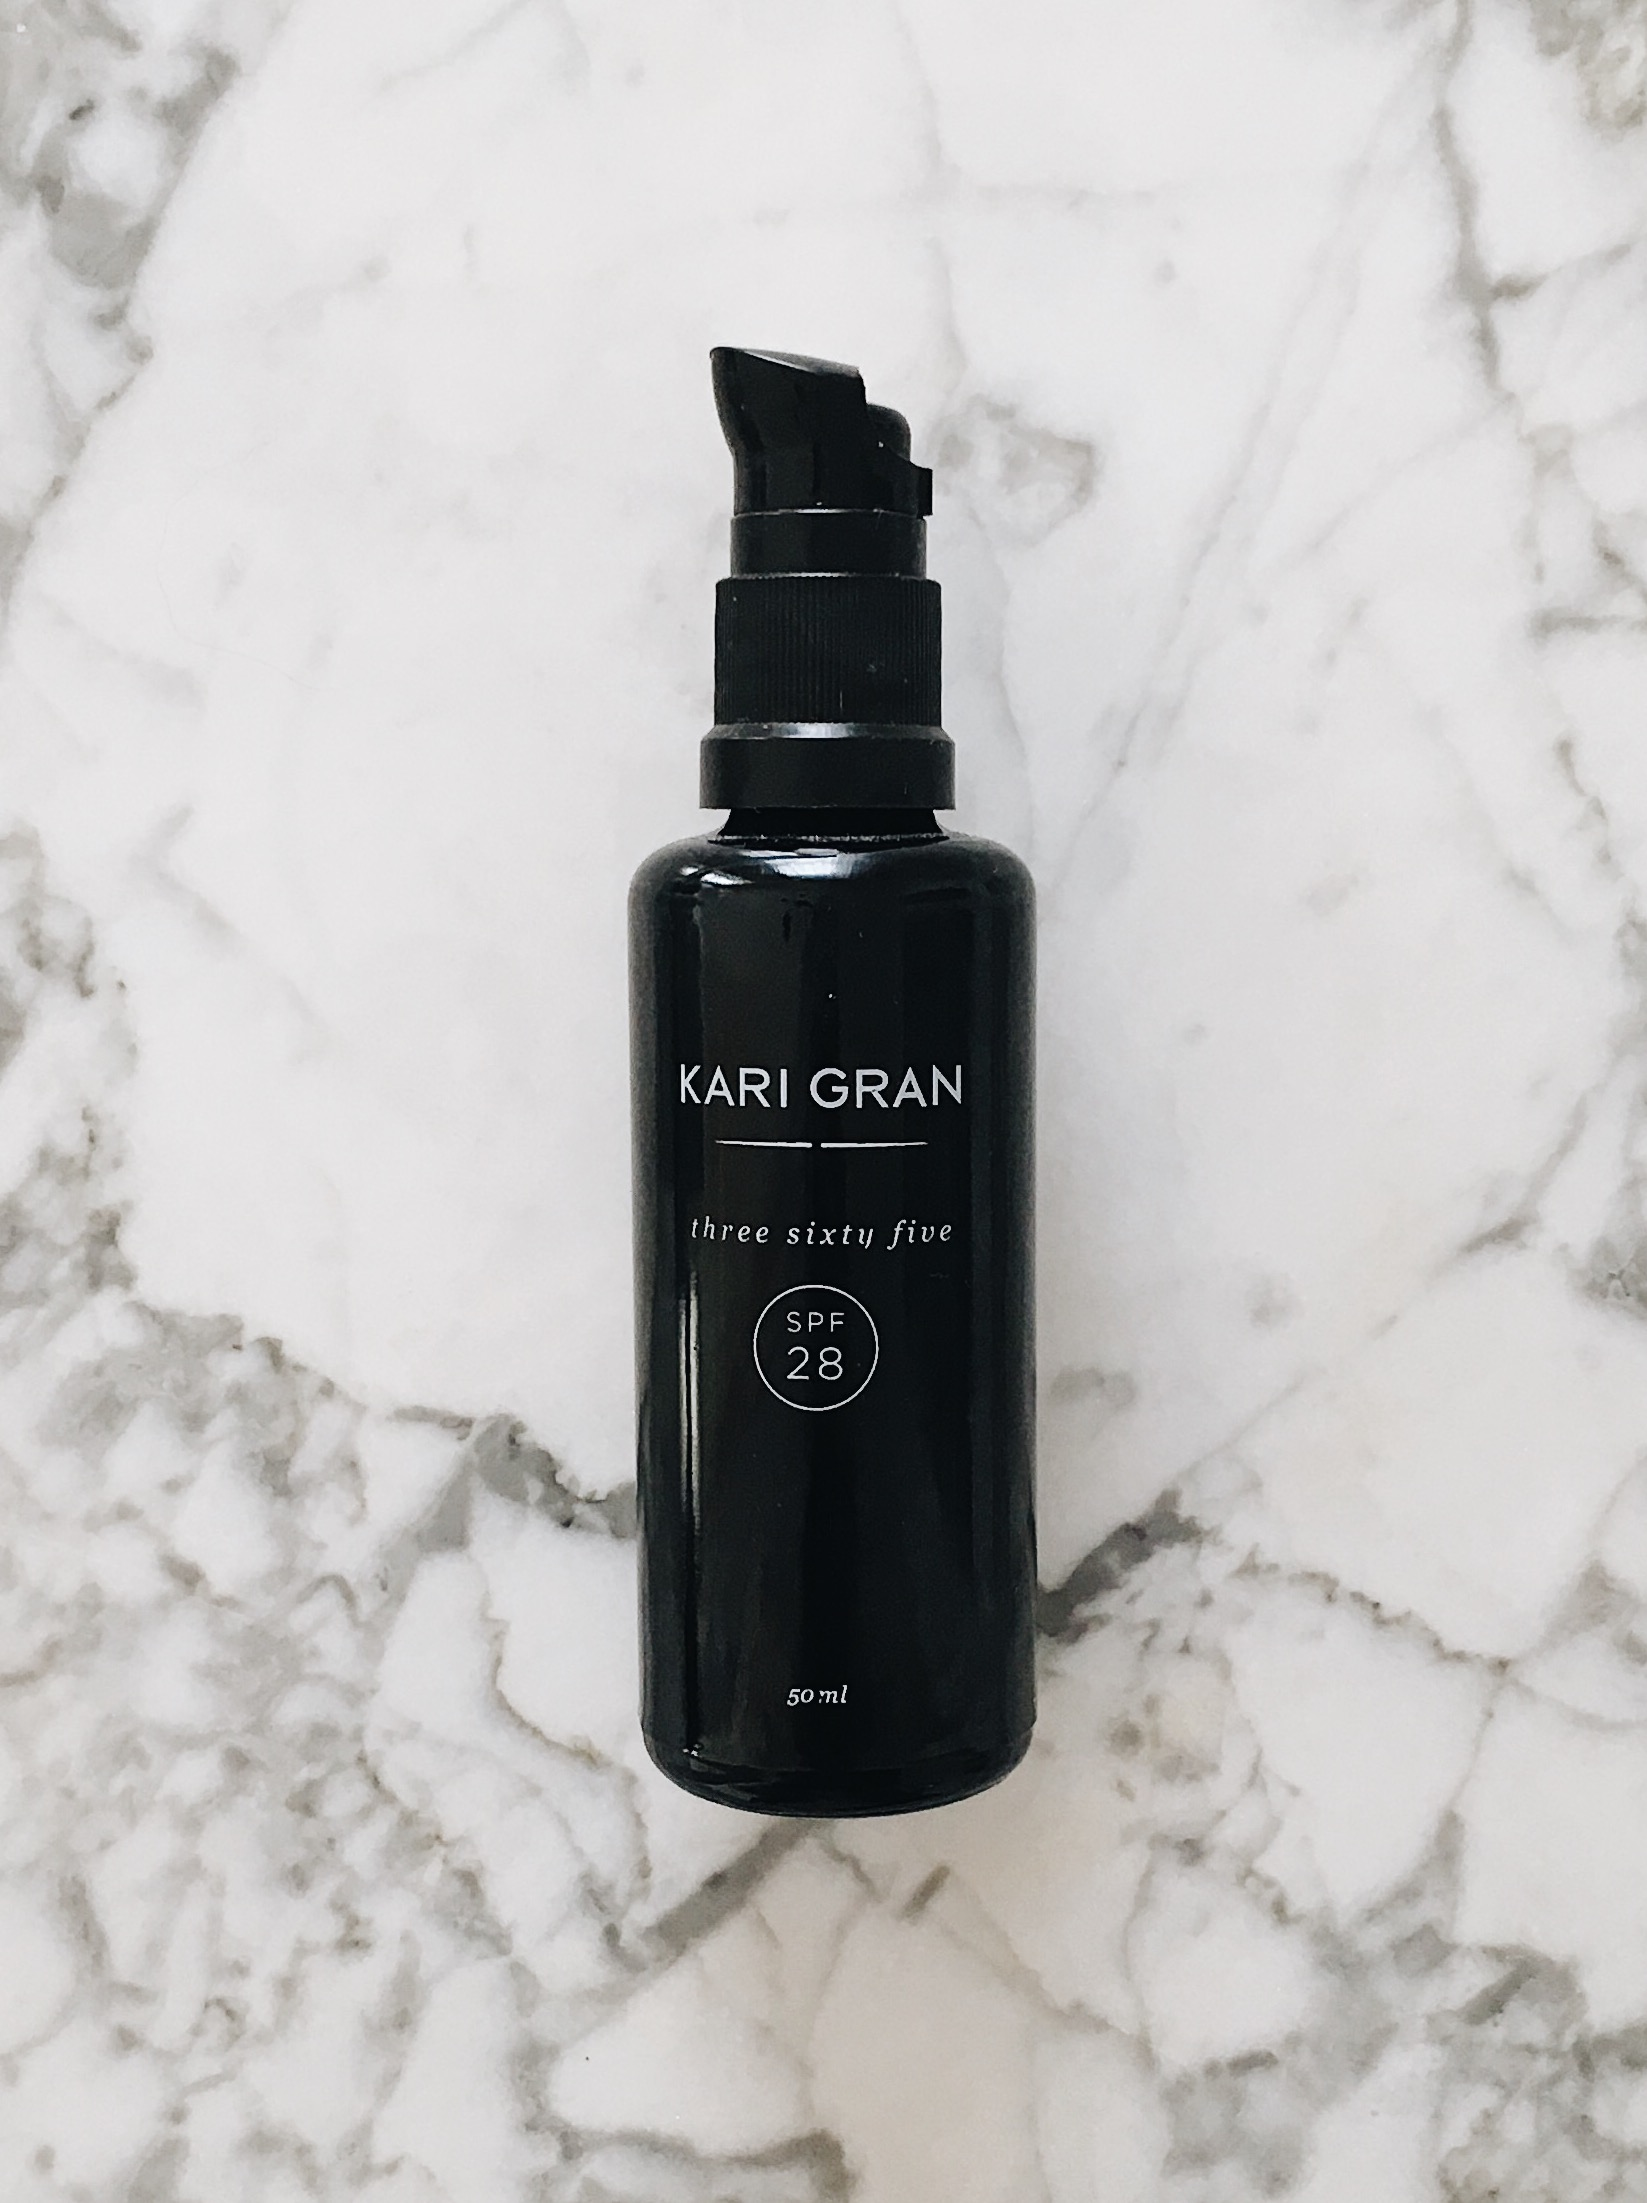 Three Sixty Five Facial Sunscreen by Kari Gran